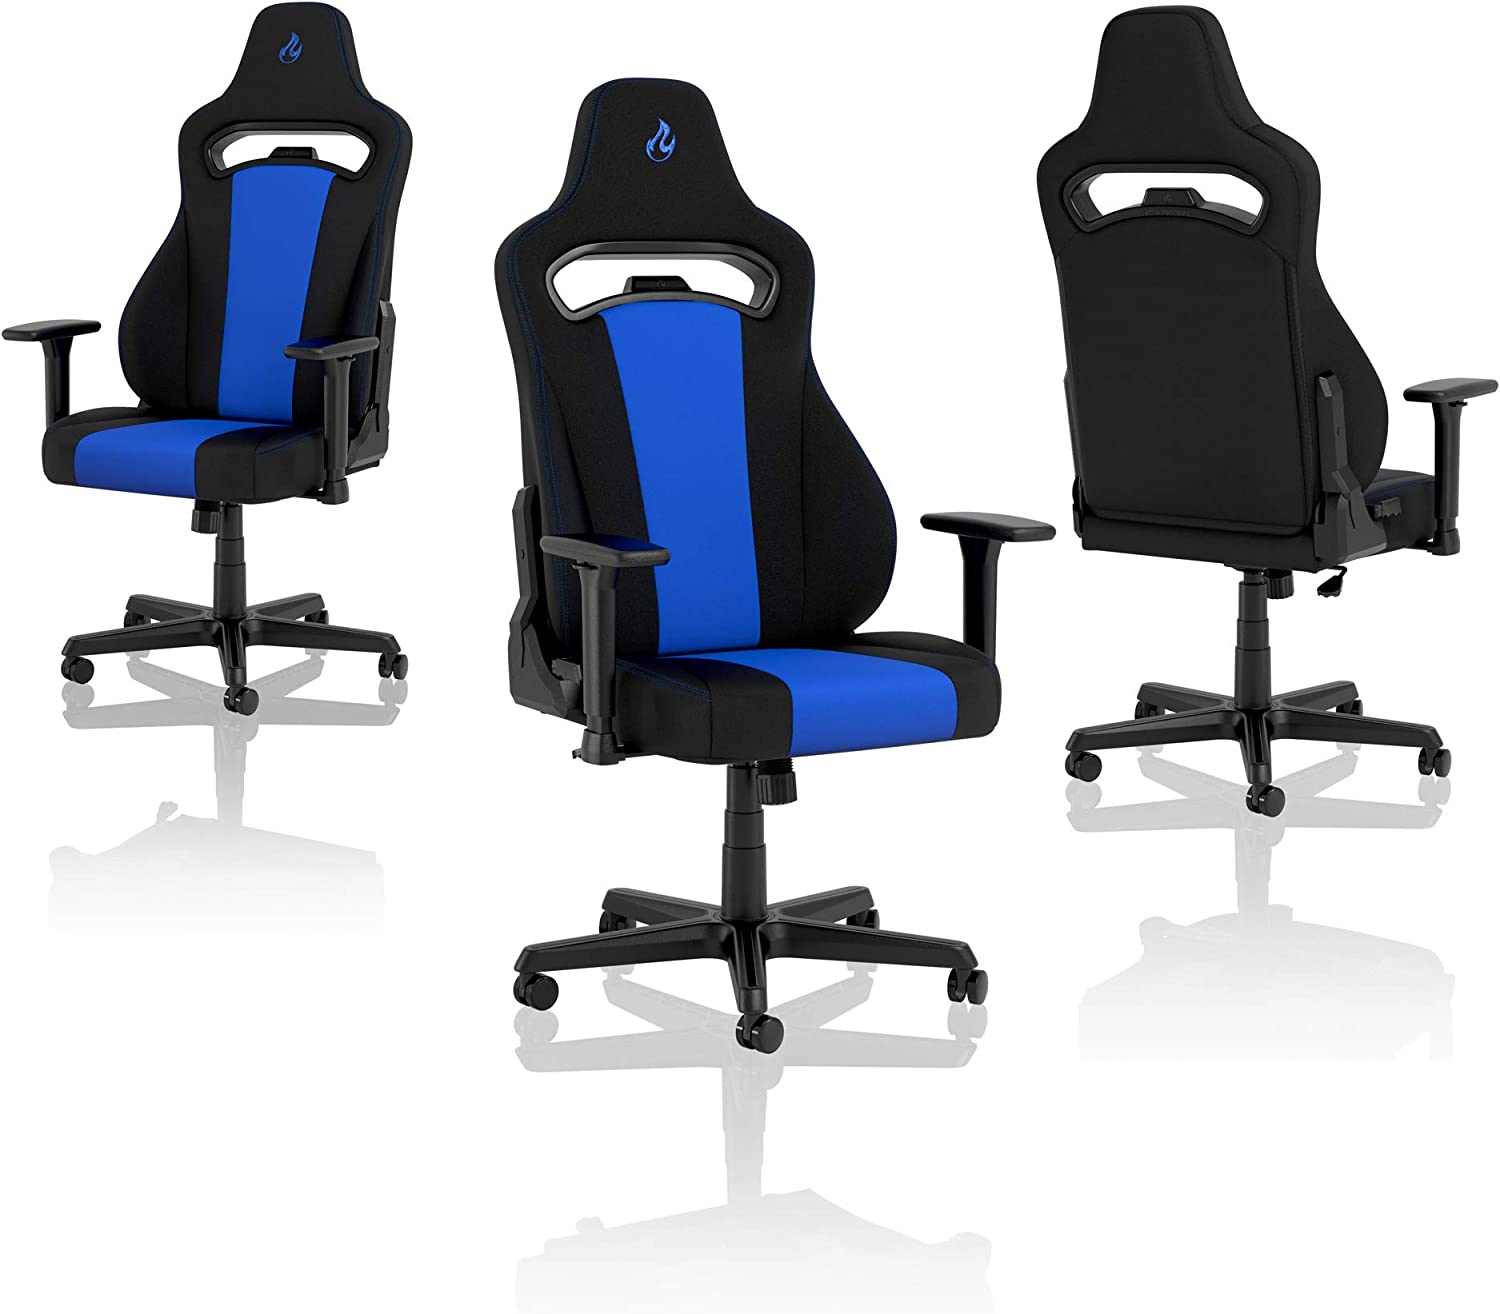 Nitro-Concepts E250 Chaise de Gaming - Chaise de Bureau - 125 kg - Inclinable de 90 ° à 135 ° - Réglable en Hauteur - Accoudoirs 2D - Noir/Rouge Noir/Bleu